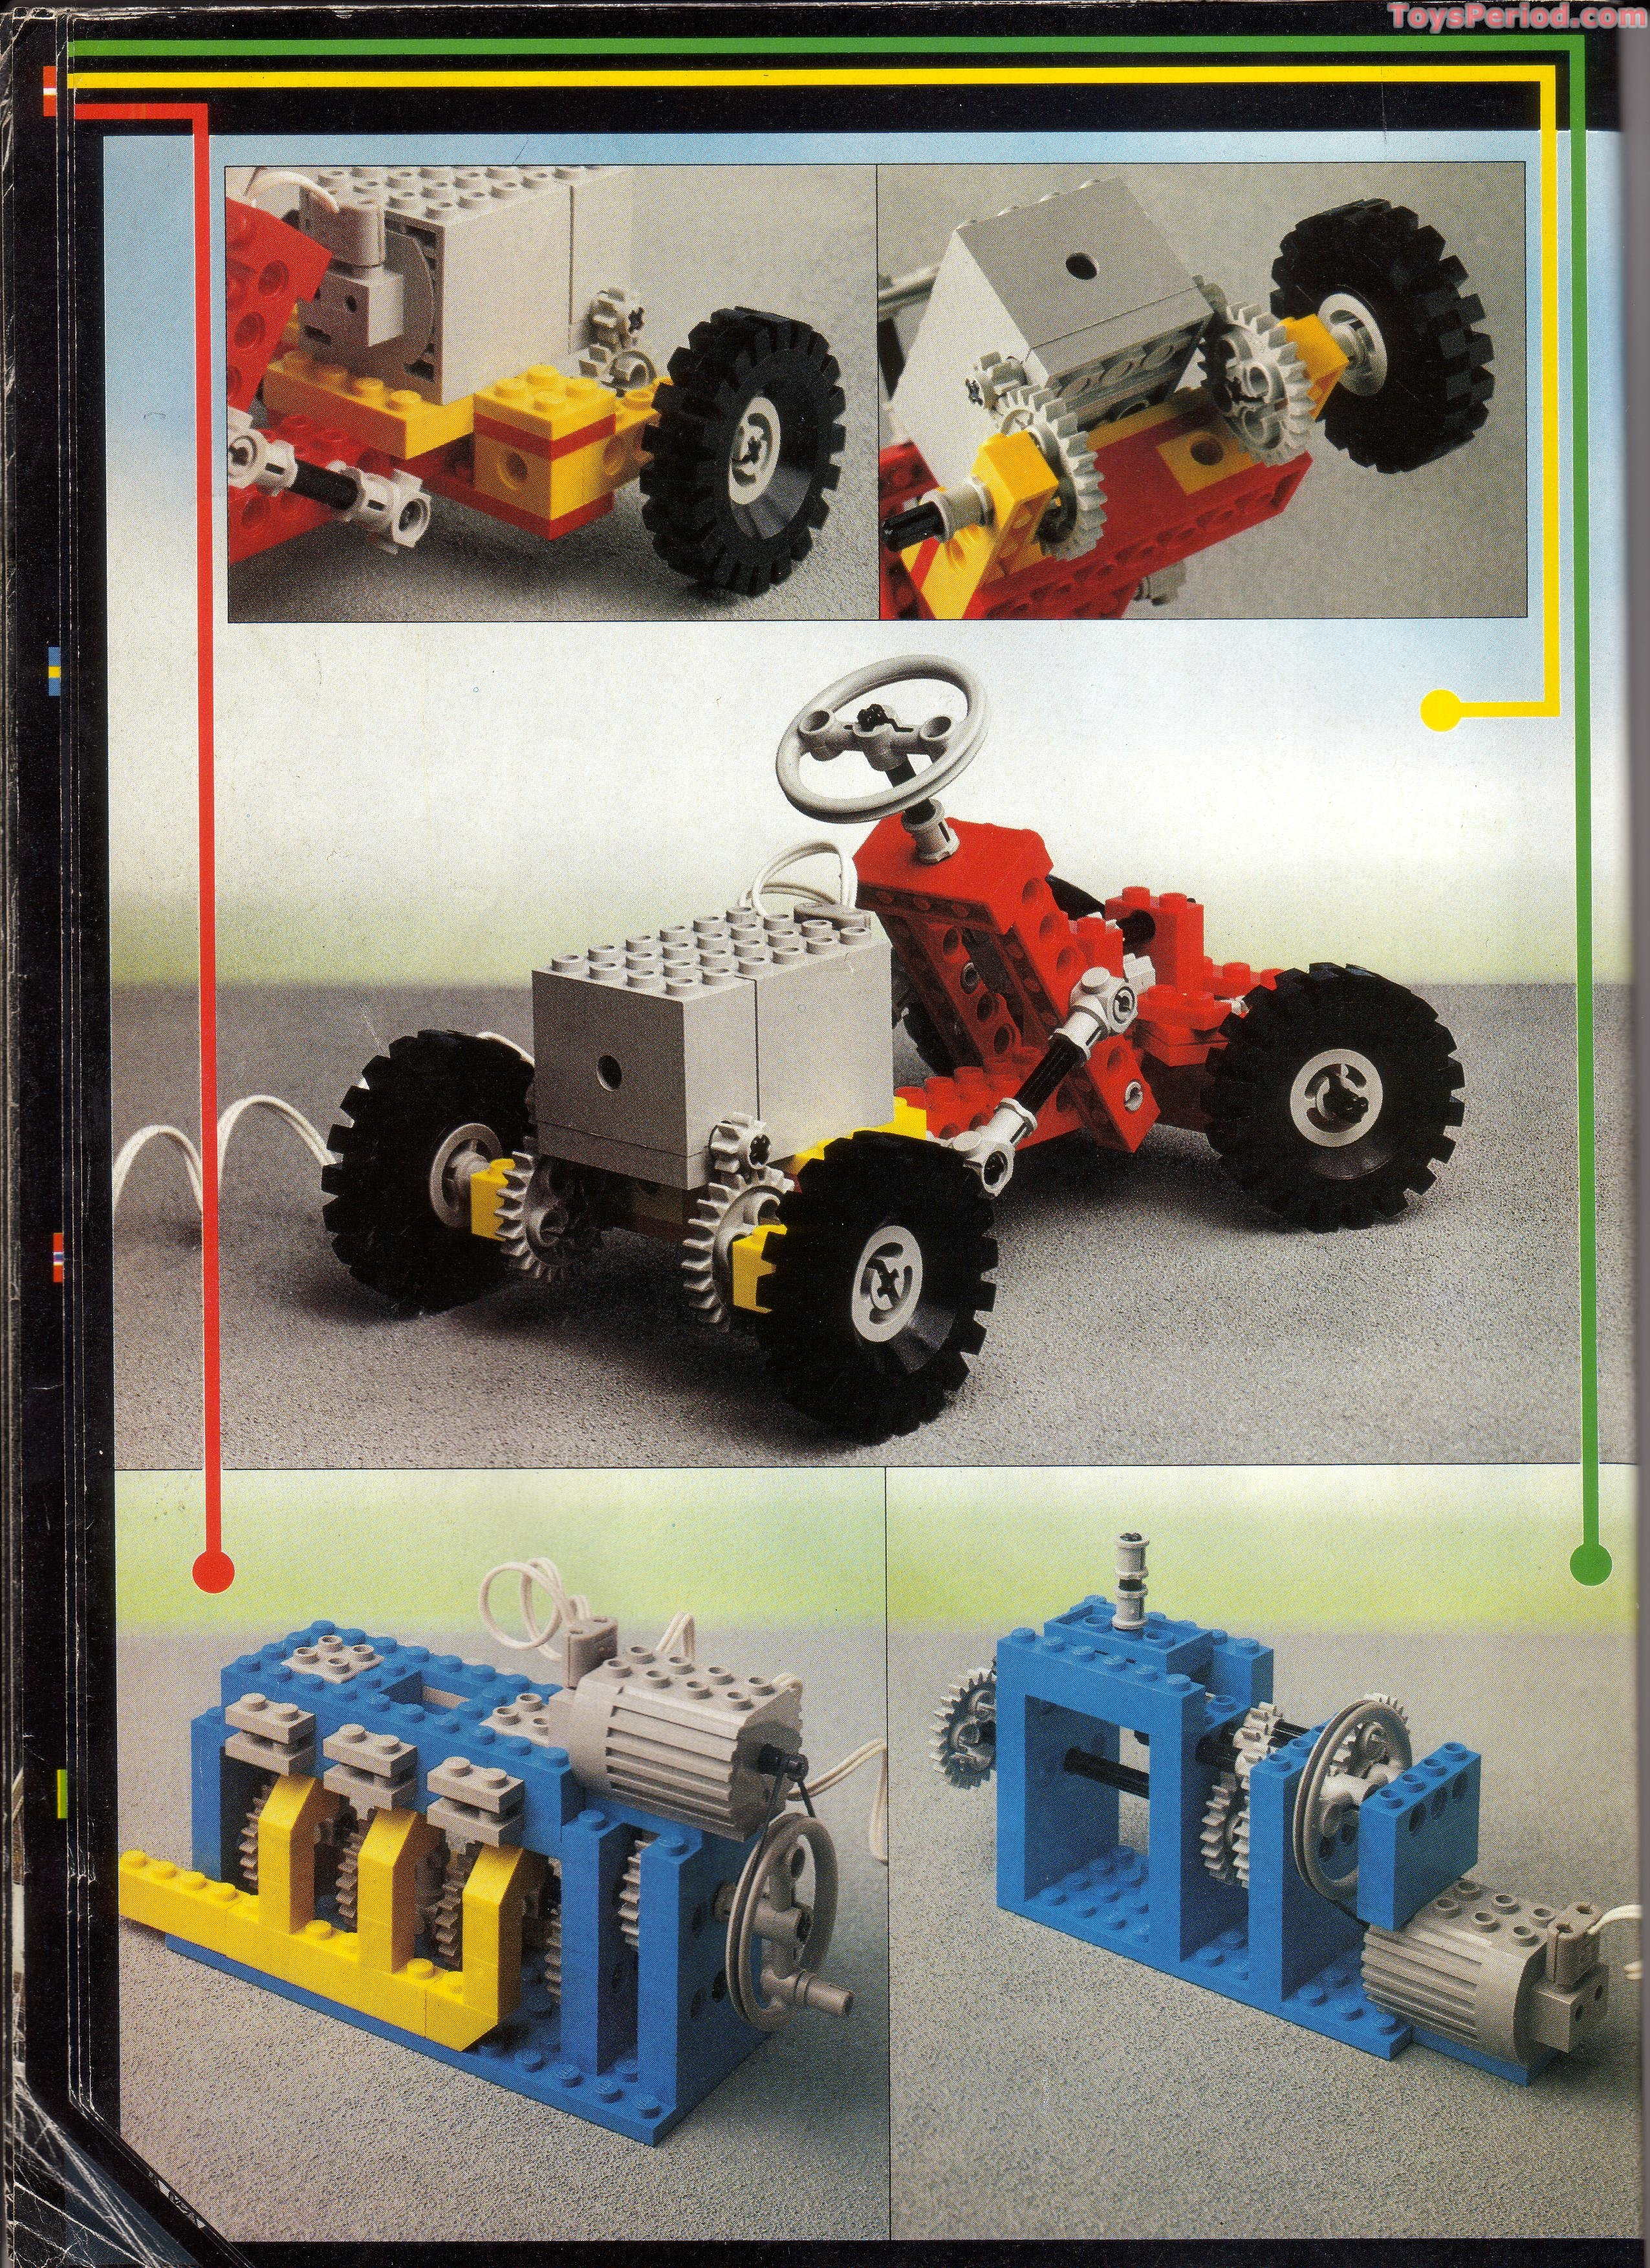 LEGO 8860 Auto Chassis Set Parts Inventory and Instructions - LEGO ...